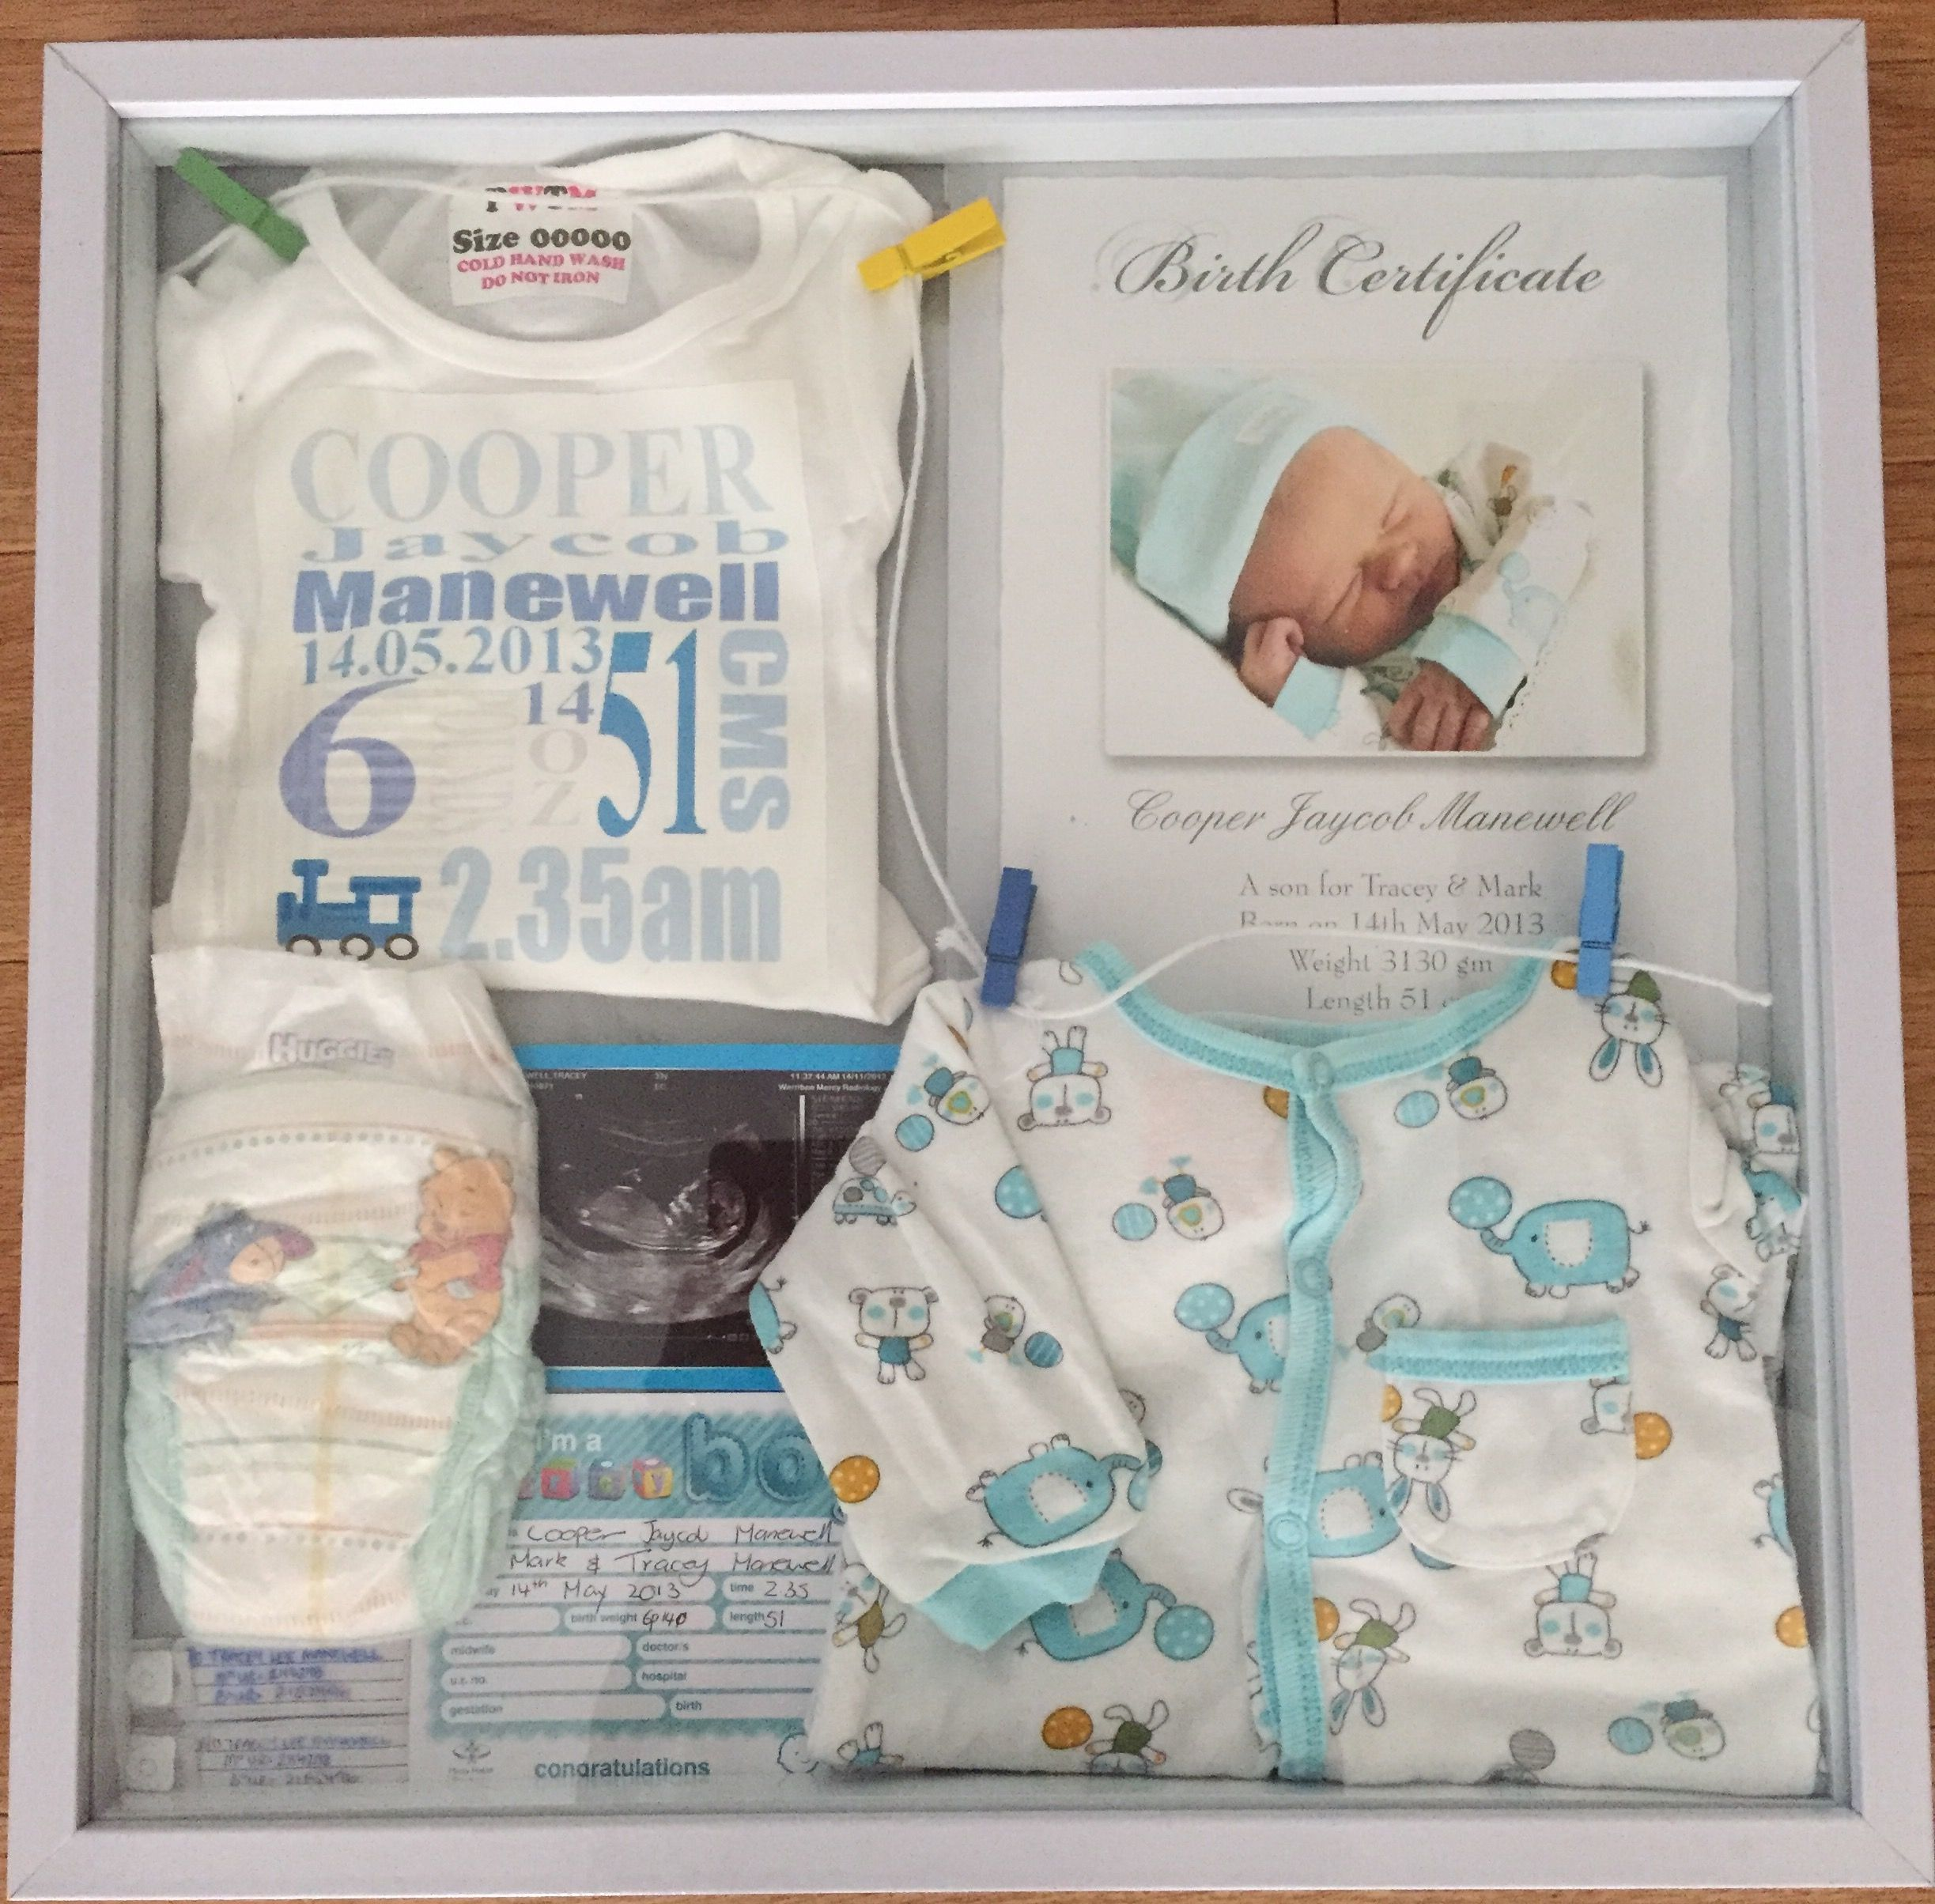 Newborn shadow box i made kmart shadow box and personalise items kmart shadow box and personalise items nappy hospital wrist band hospital photographer birth certificate first outfit card from their hospital bed 1betcityfo Image collections